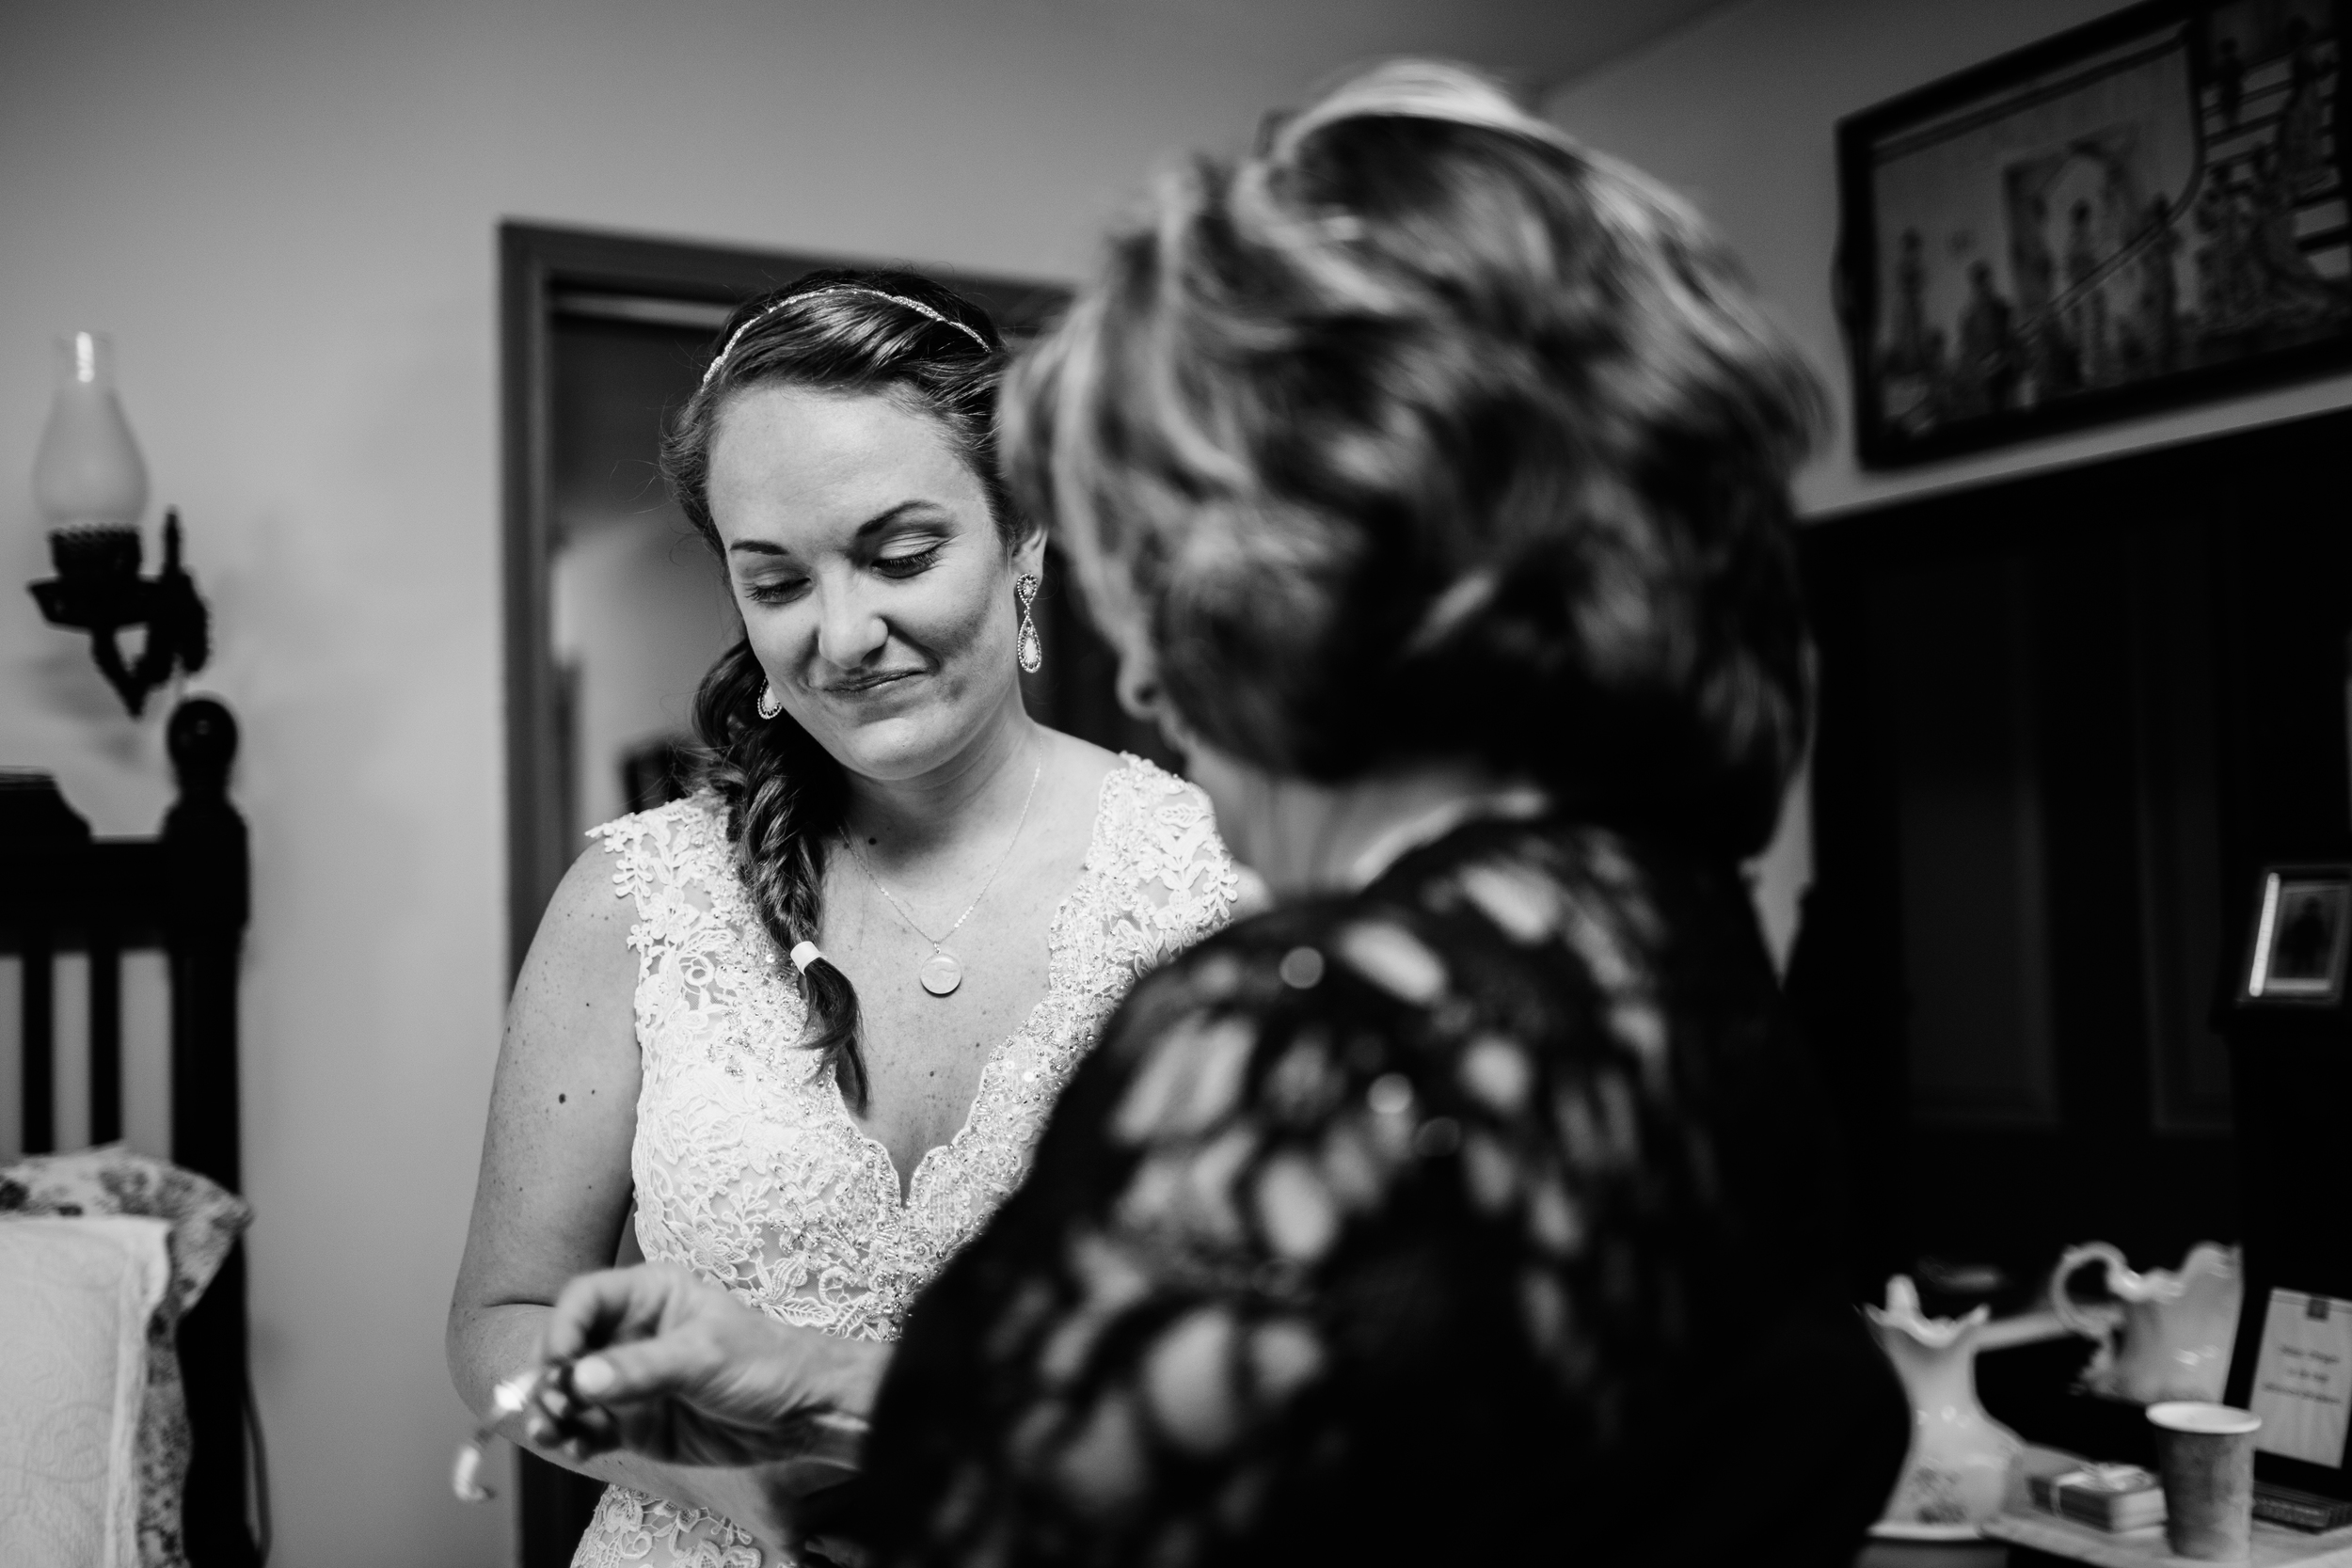 KELLIandBRADweddingJUNE2015 - gettingready (53 of 66).jpg